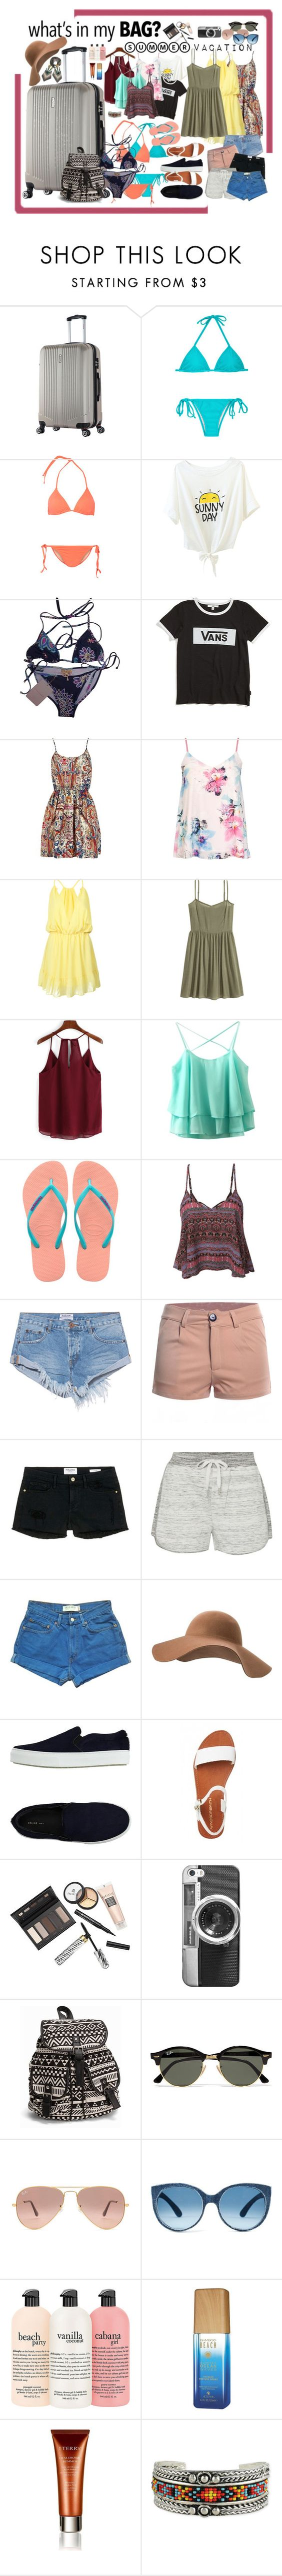 """Bez naslova #260"" by natasag ❤ liked on Polyvore featuring Tart, Emilio Pucci, Vans, Dorothy Perkins, WithChic, H&M, Havaianas, LE3NO, One Teaspoon and Frame Denim"